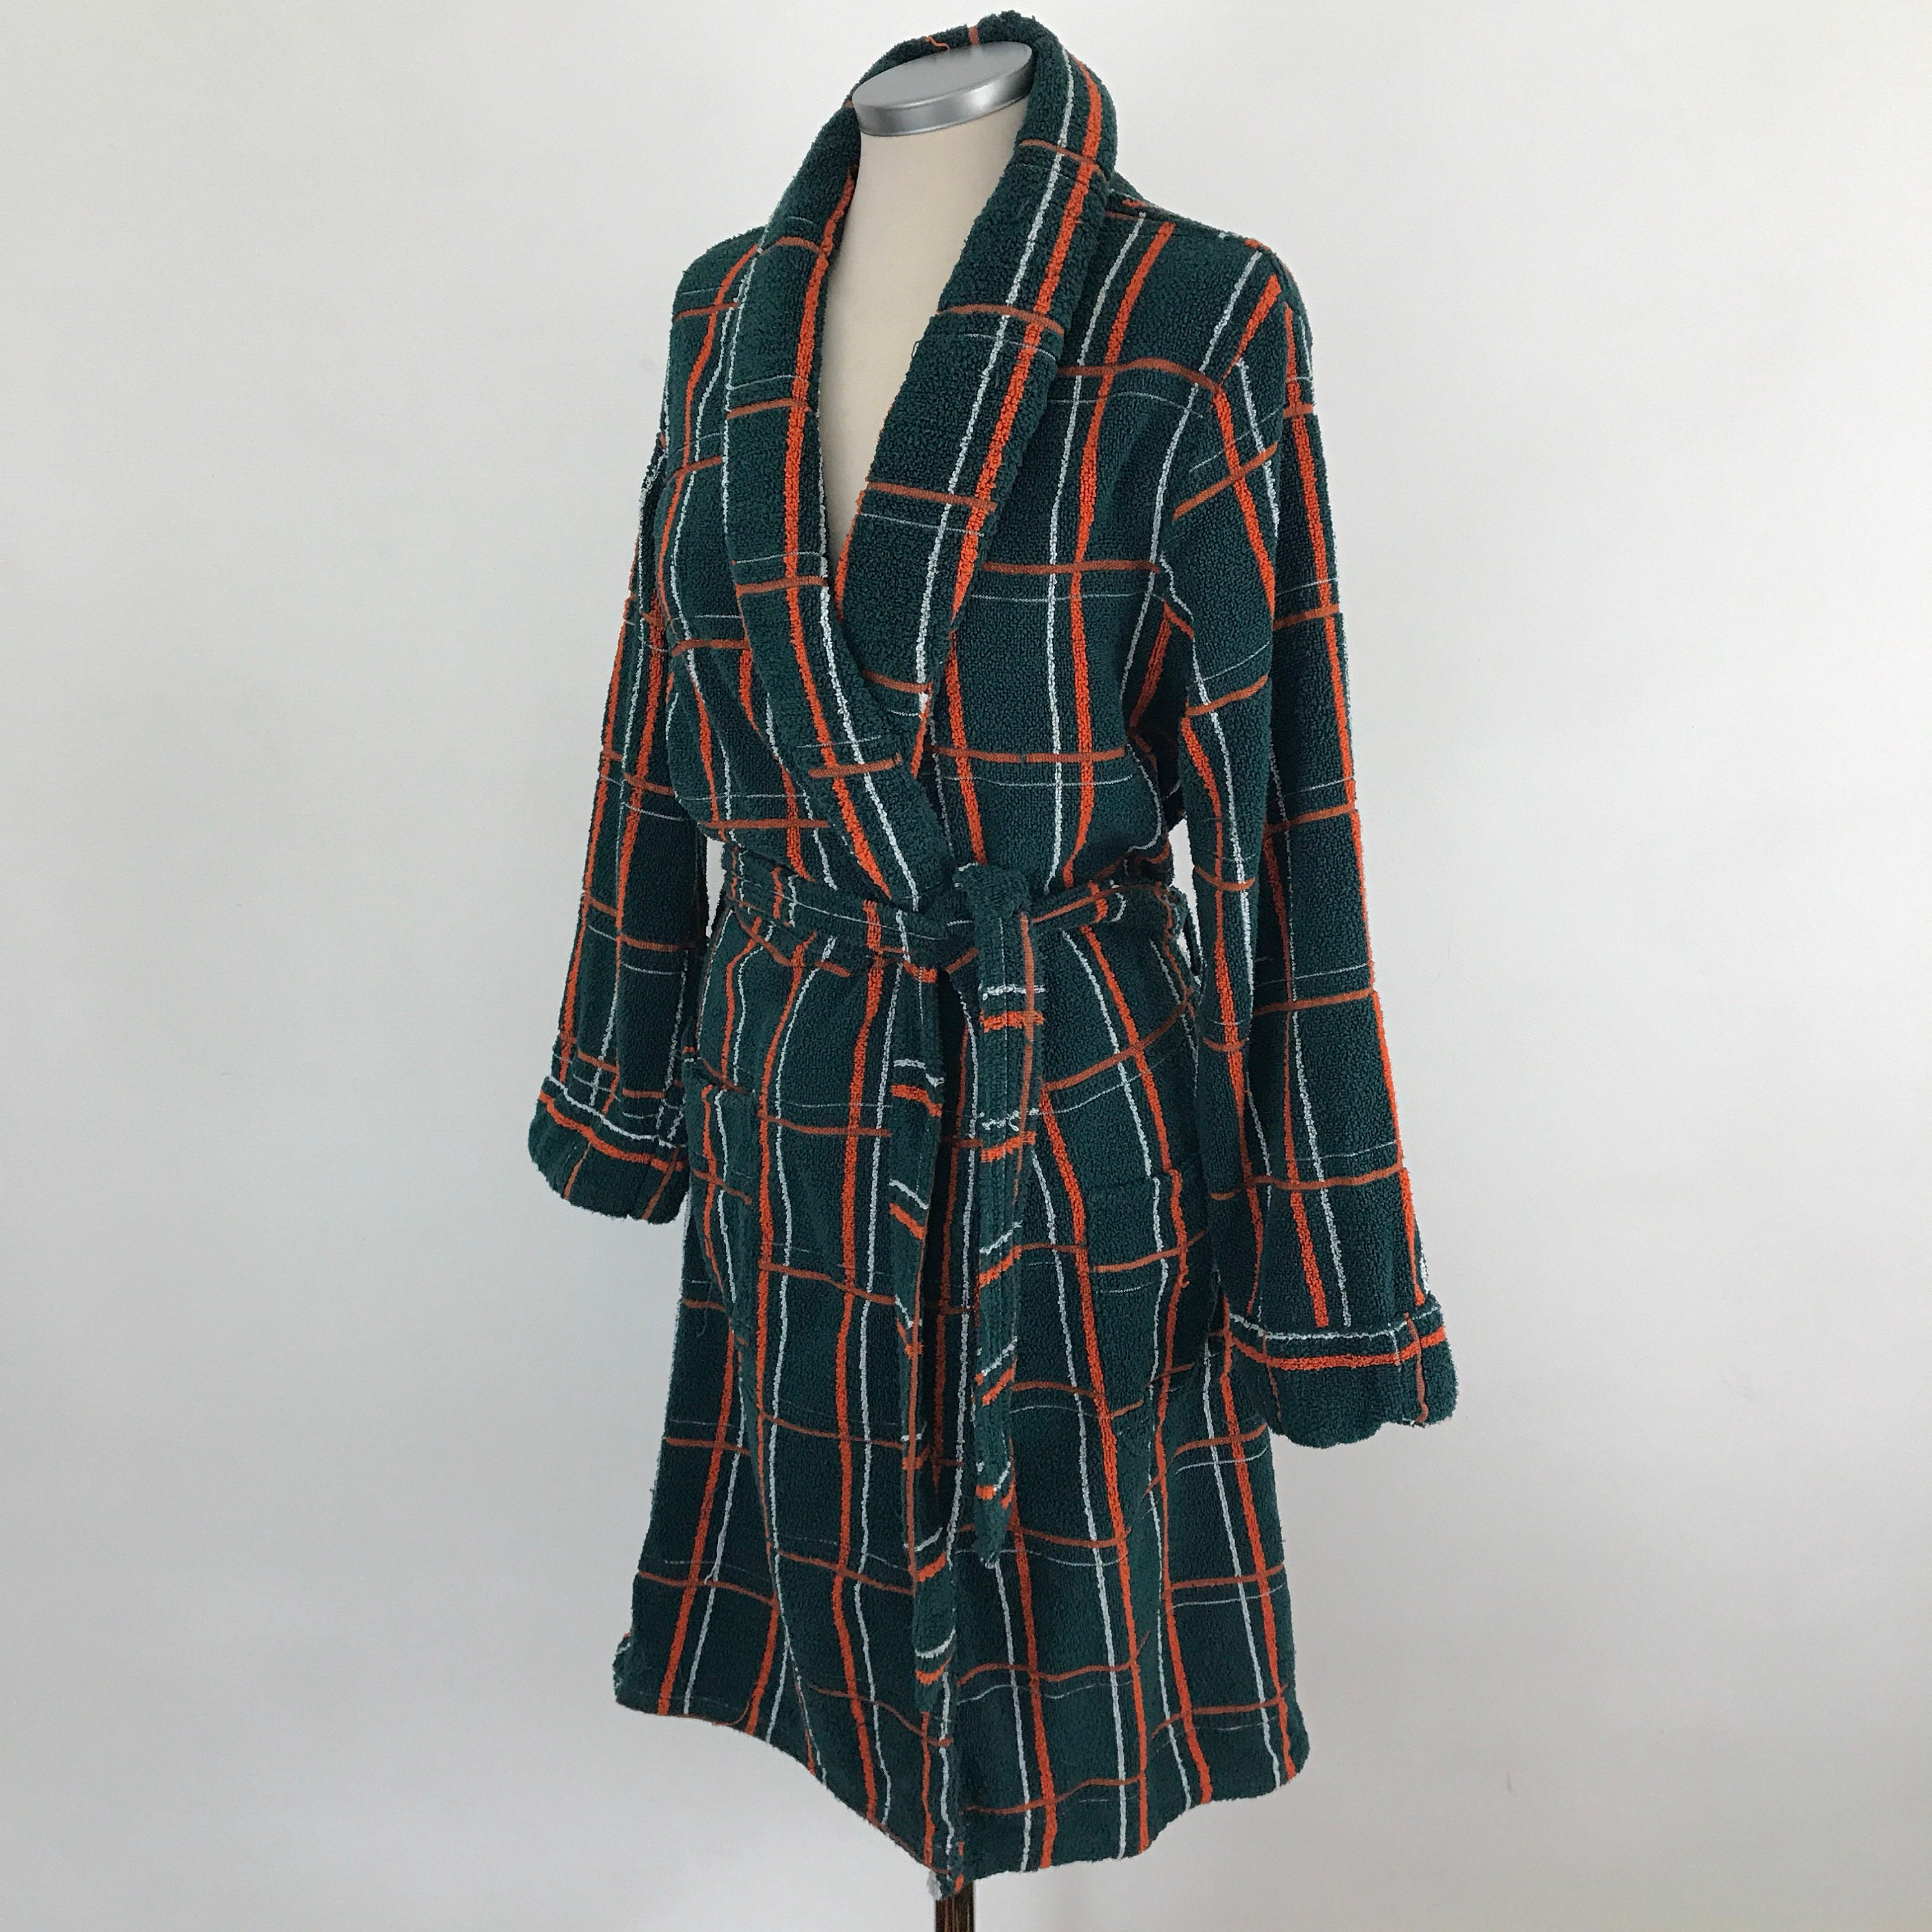 Vintage Robe Terry Towelling Vintage Menswear Small